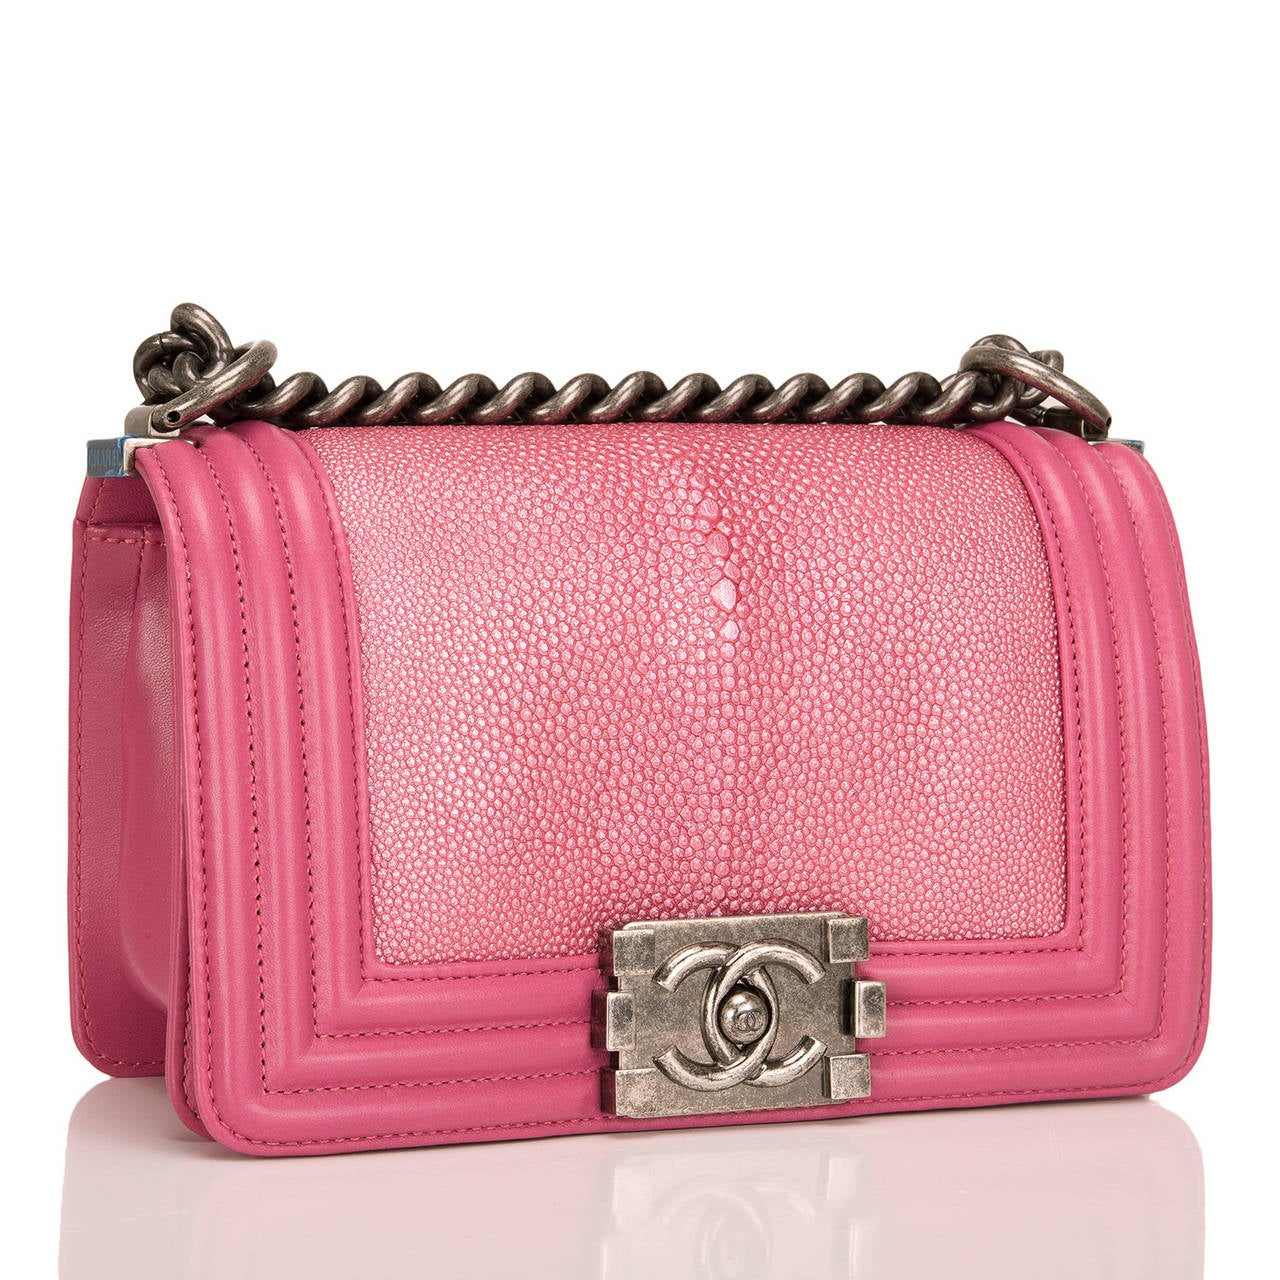 This limited edition Small Boy bag is exceptional in metallic pink stingray, accented by pink lambskin leather and aged ruthenium hardware. The bag has a full front flap with the Boy Chanel signature CC push lock closure and aged ruthenium chain